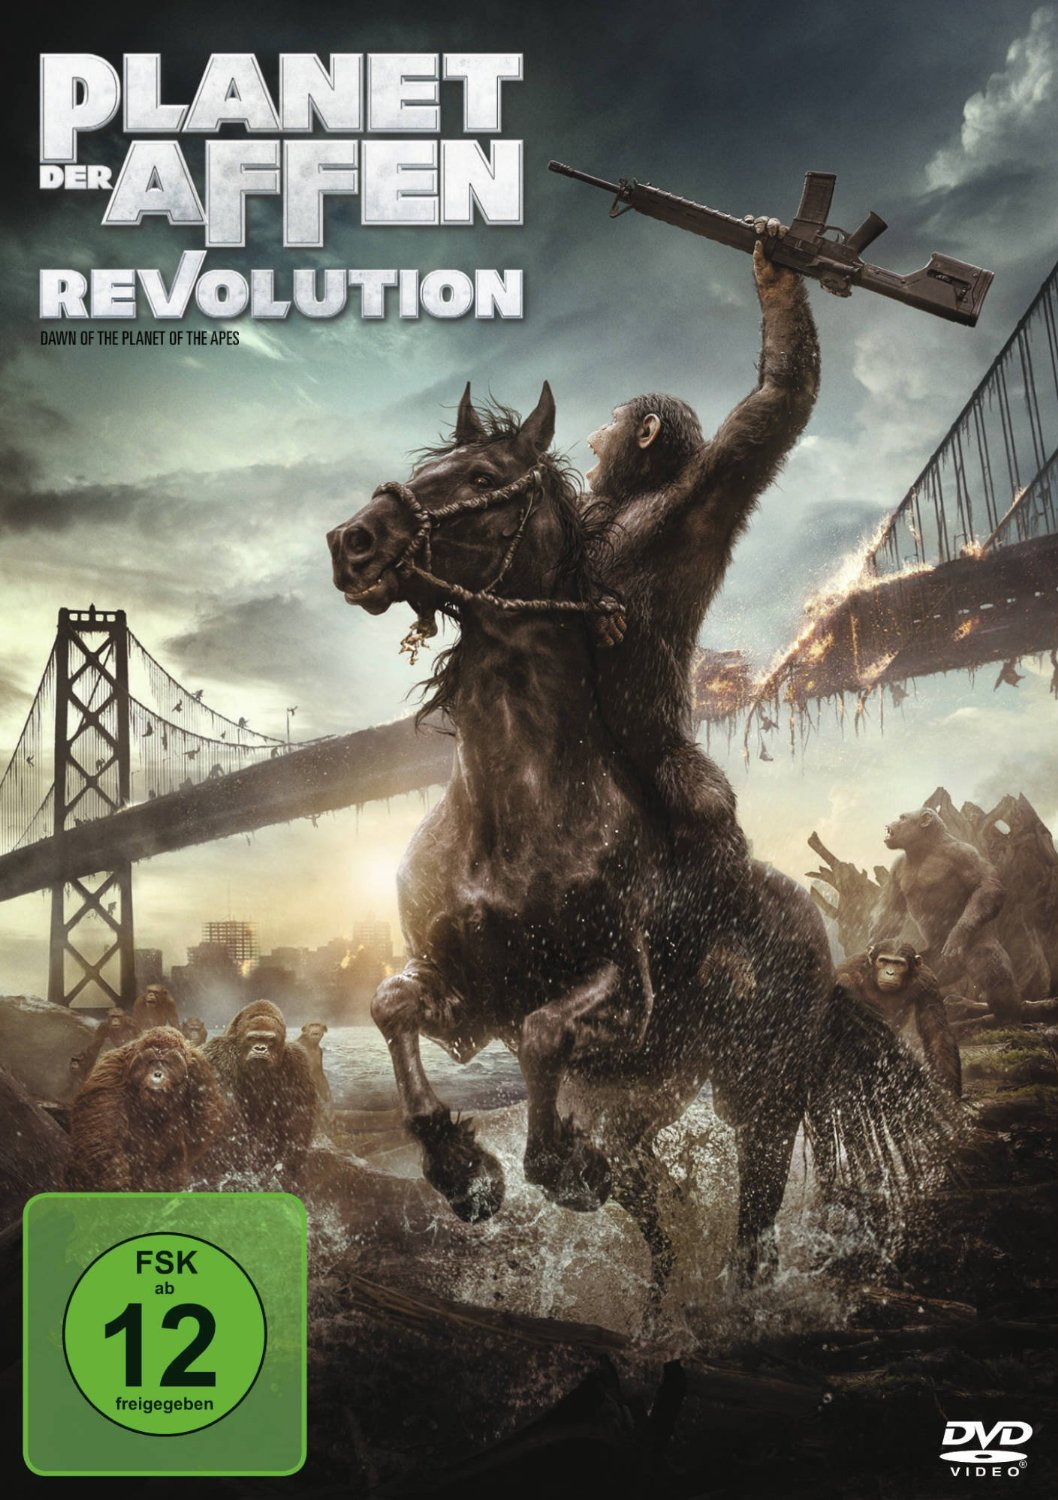 DVD-Cover von Planet der Affen: Revolution